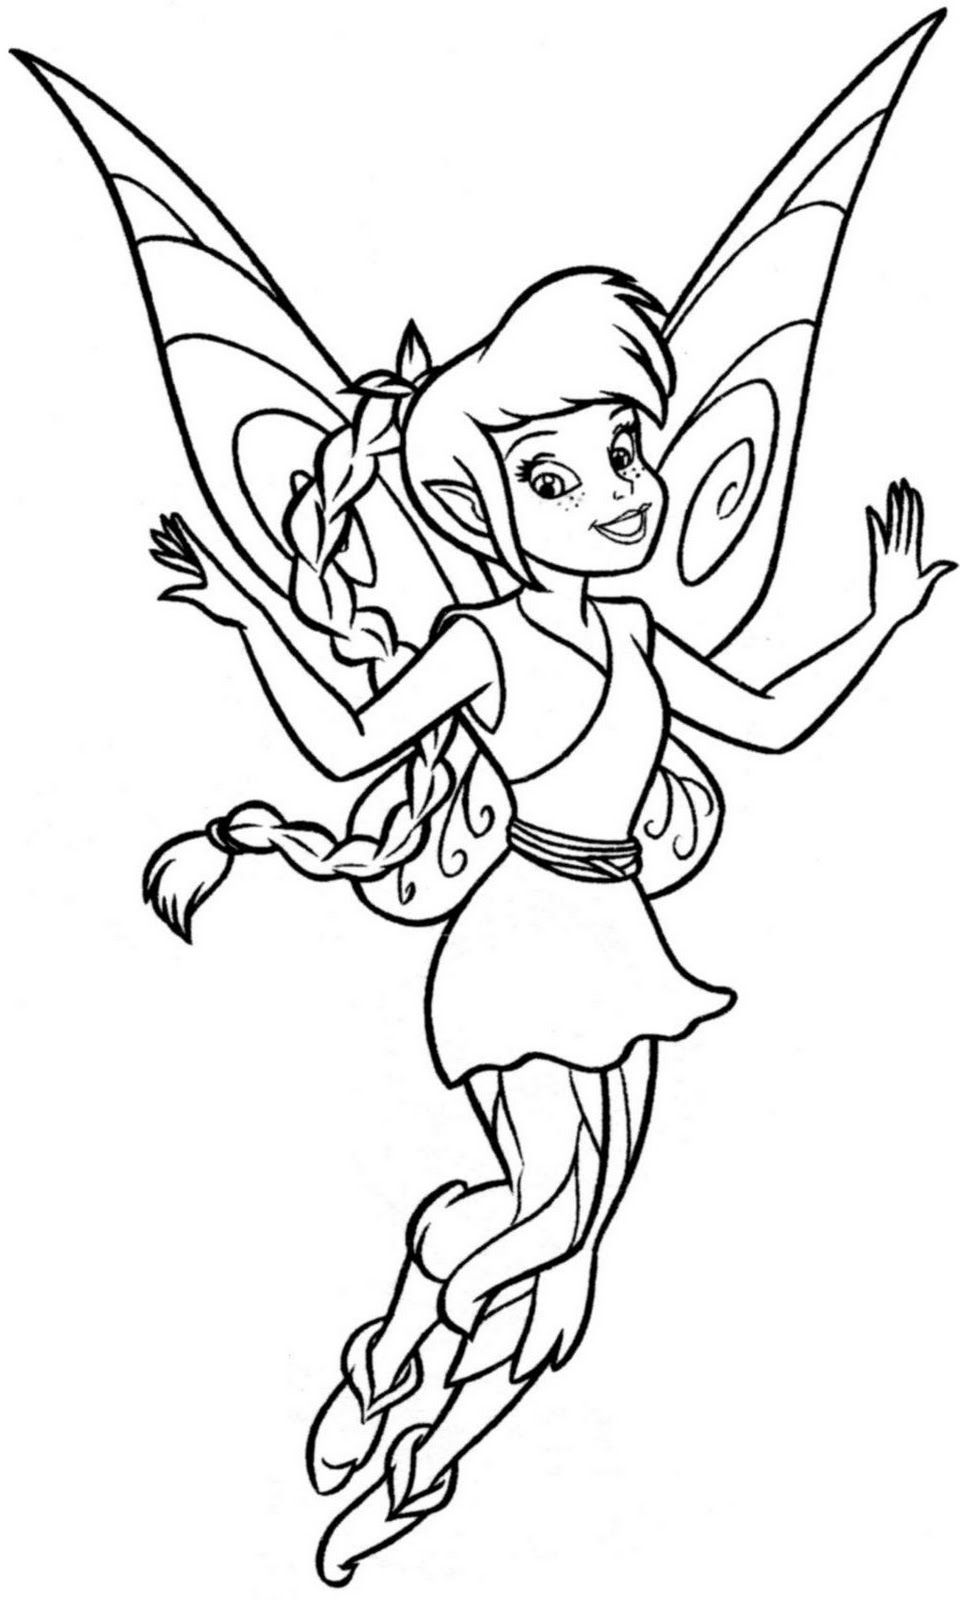 tinkerbell para colorear buscar con google coloring pages tinkerbell coloring pages fairy. Black Bedroom Furniture Sets. Home Design Ideas